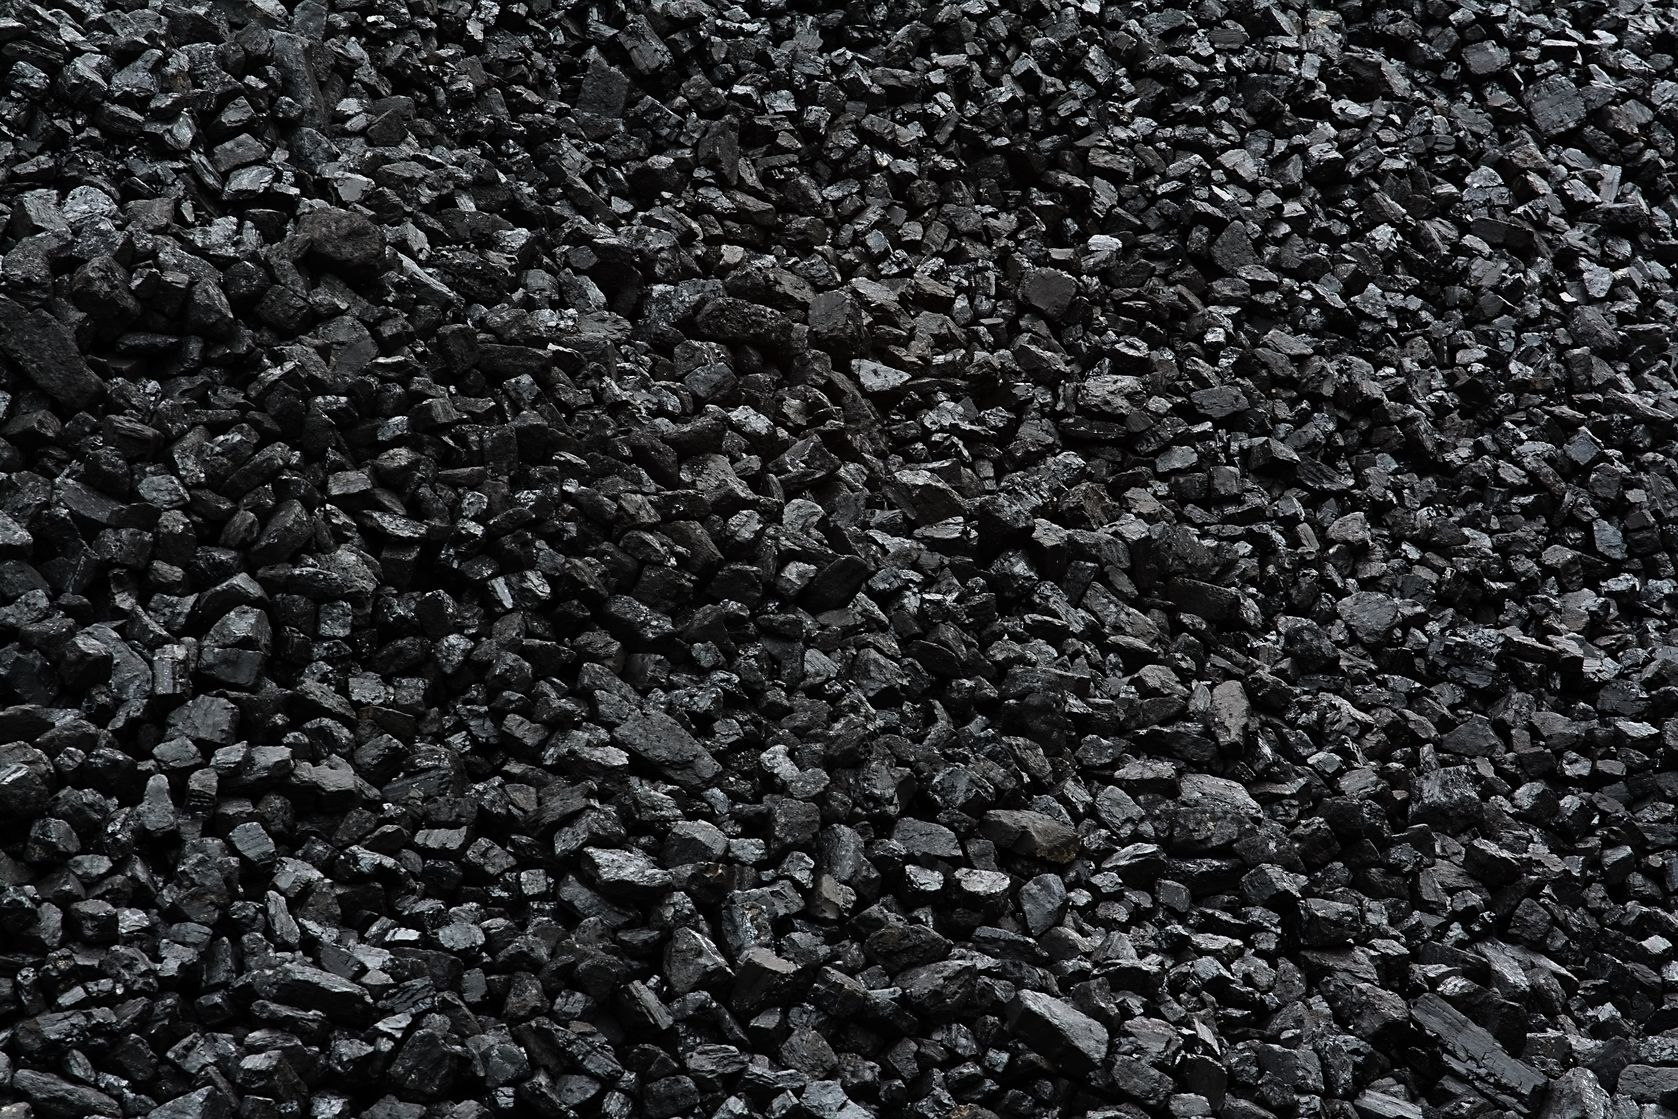 Indonesia postpones domestic insurance requirement for thermal coal exporters to Feb 2019